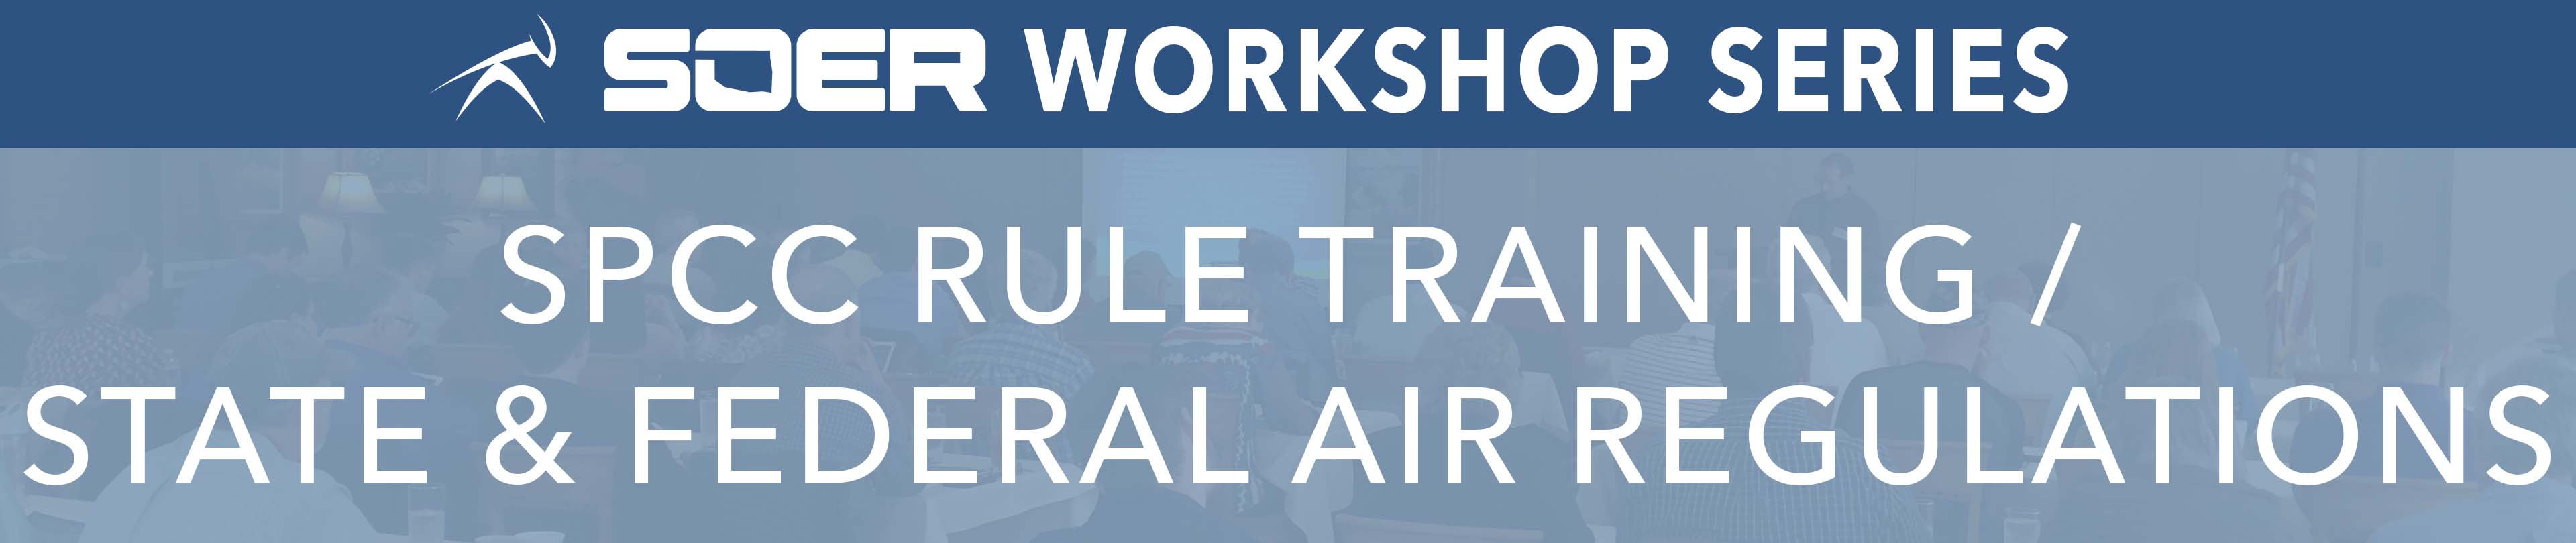 SOER- SPCC Training and State & Federal Air Regulations (Tulsa)